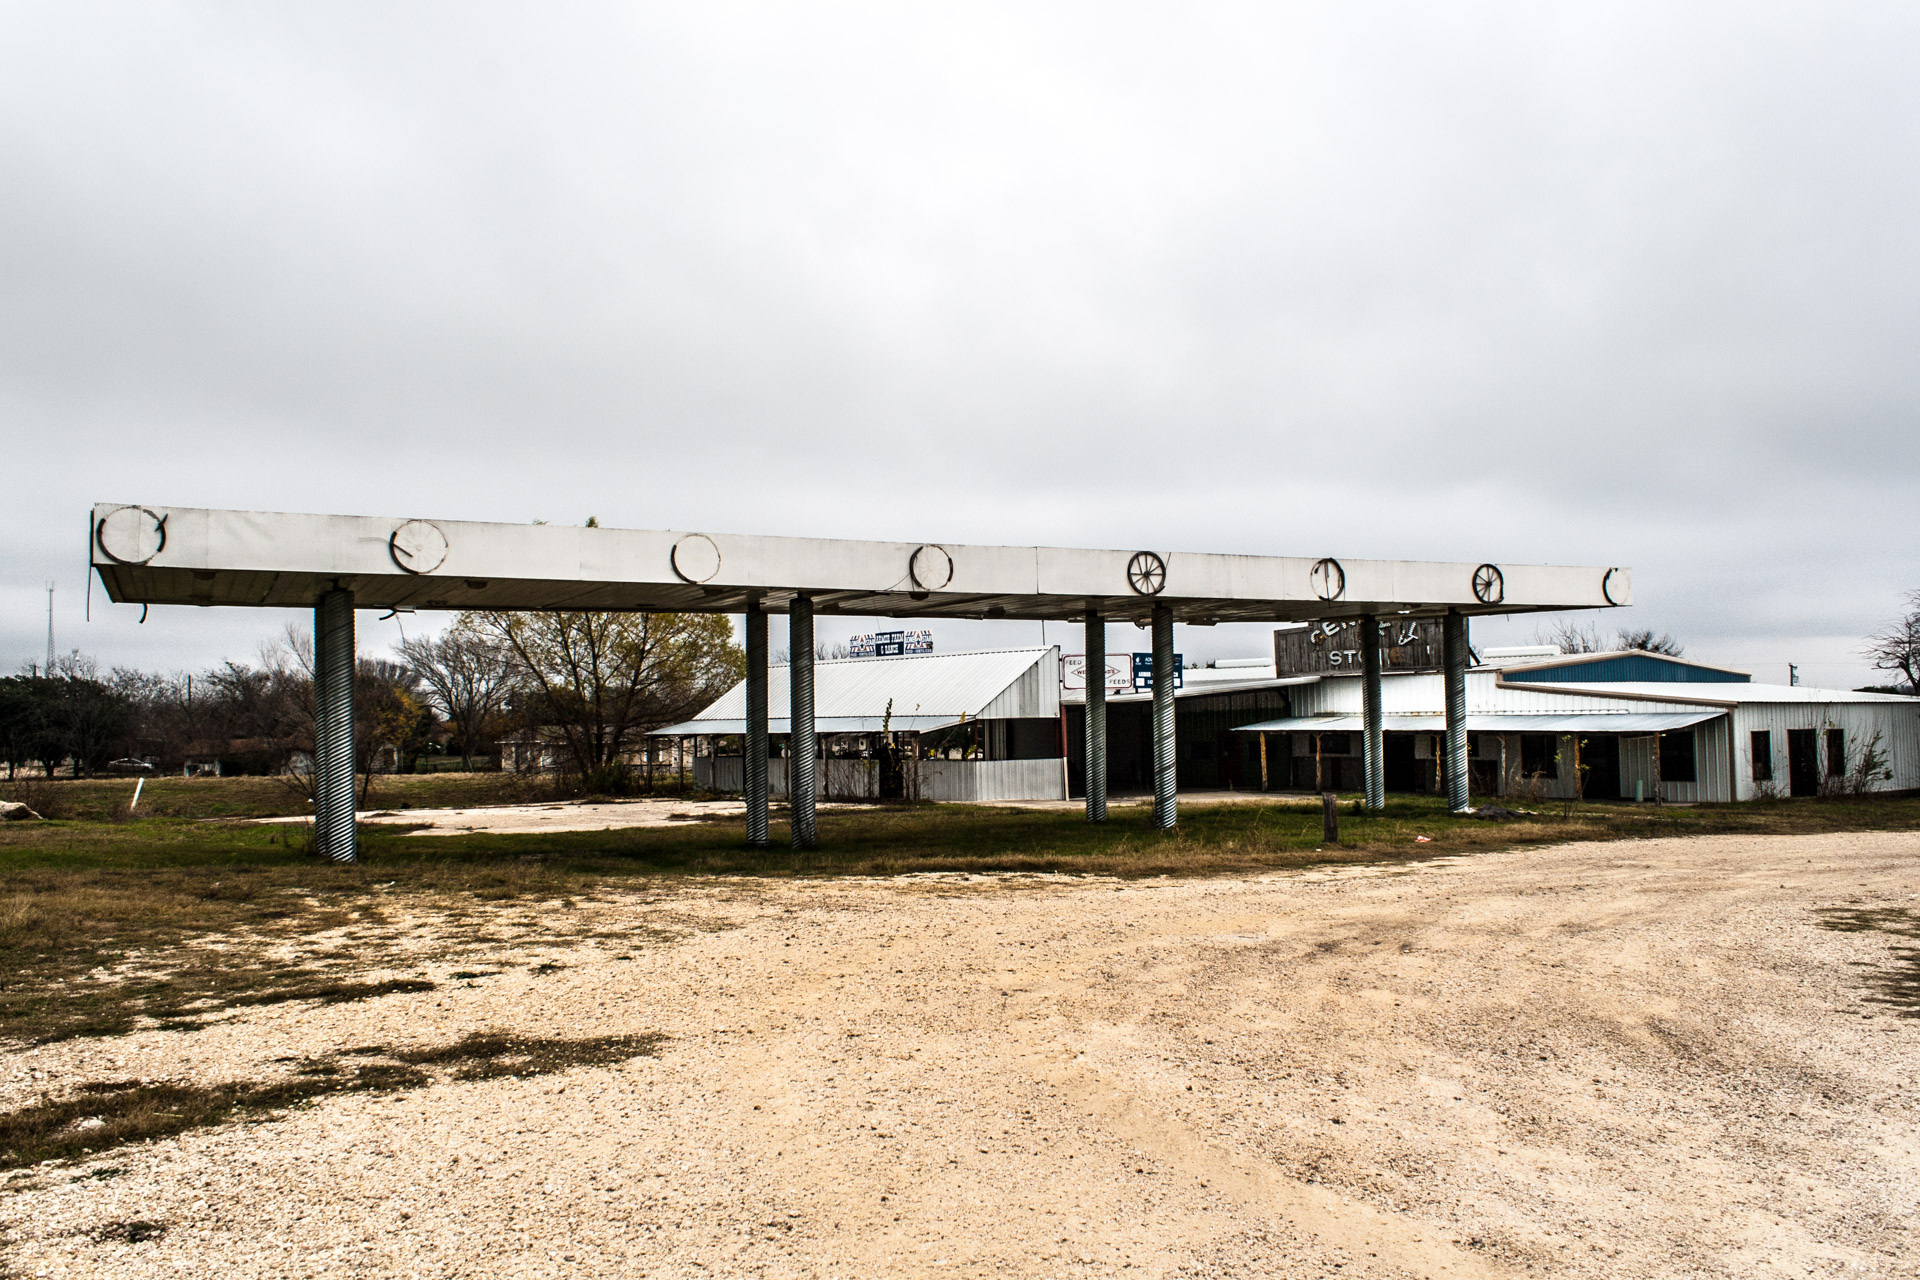 Taylor, Texas - The General Store Gas Station (far)